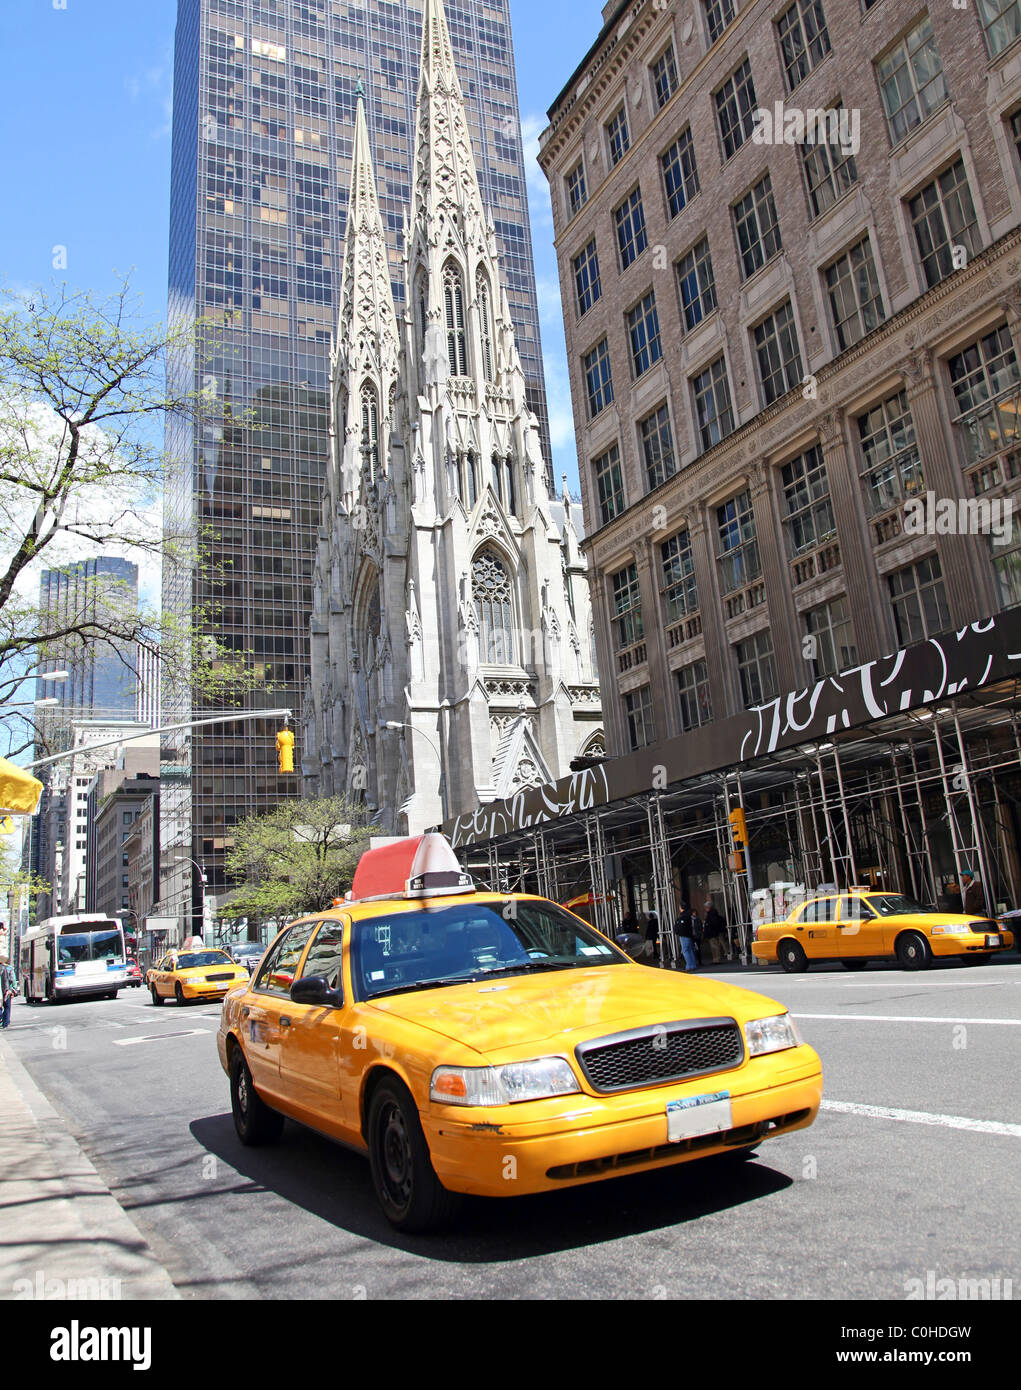 New York city street scene with St Patricks and yellow cabs - Stock Image